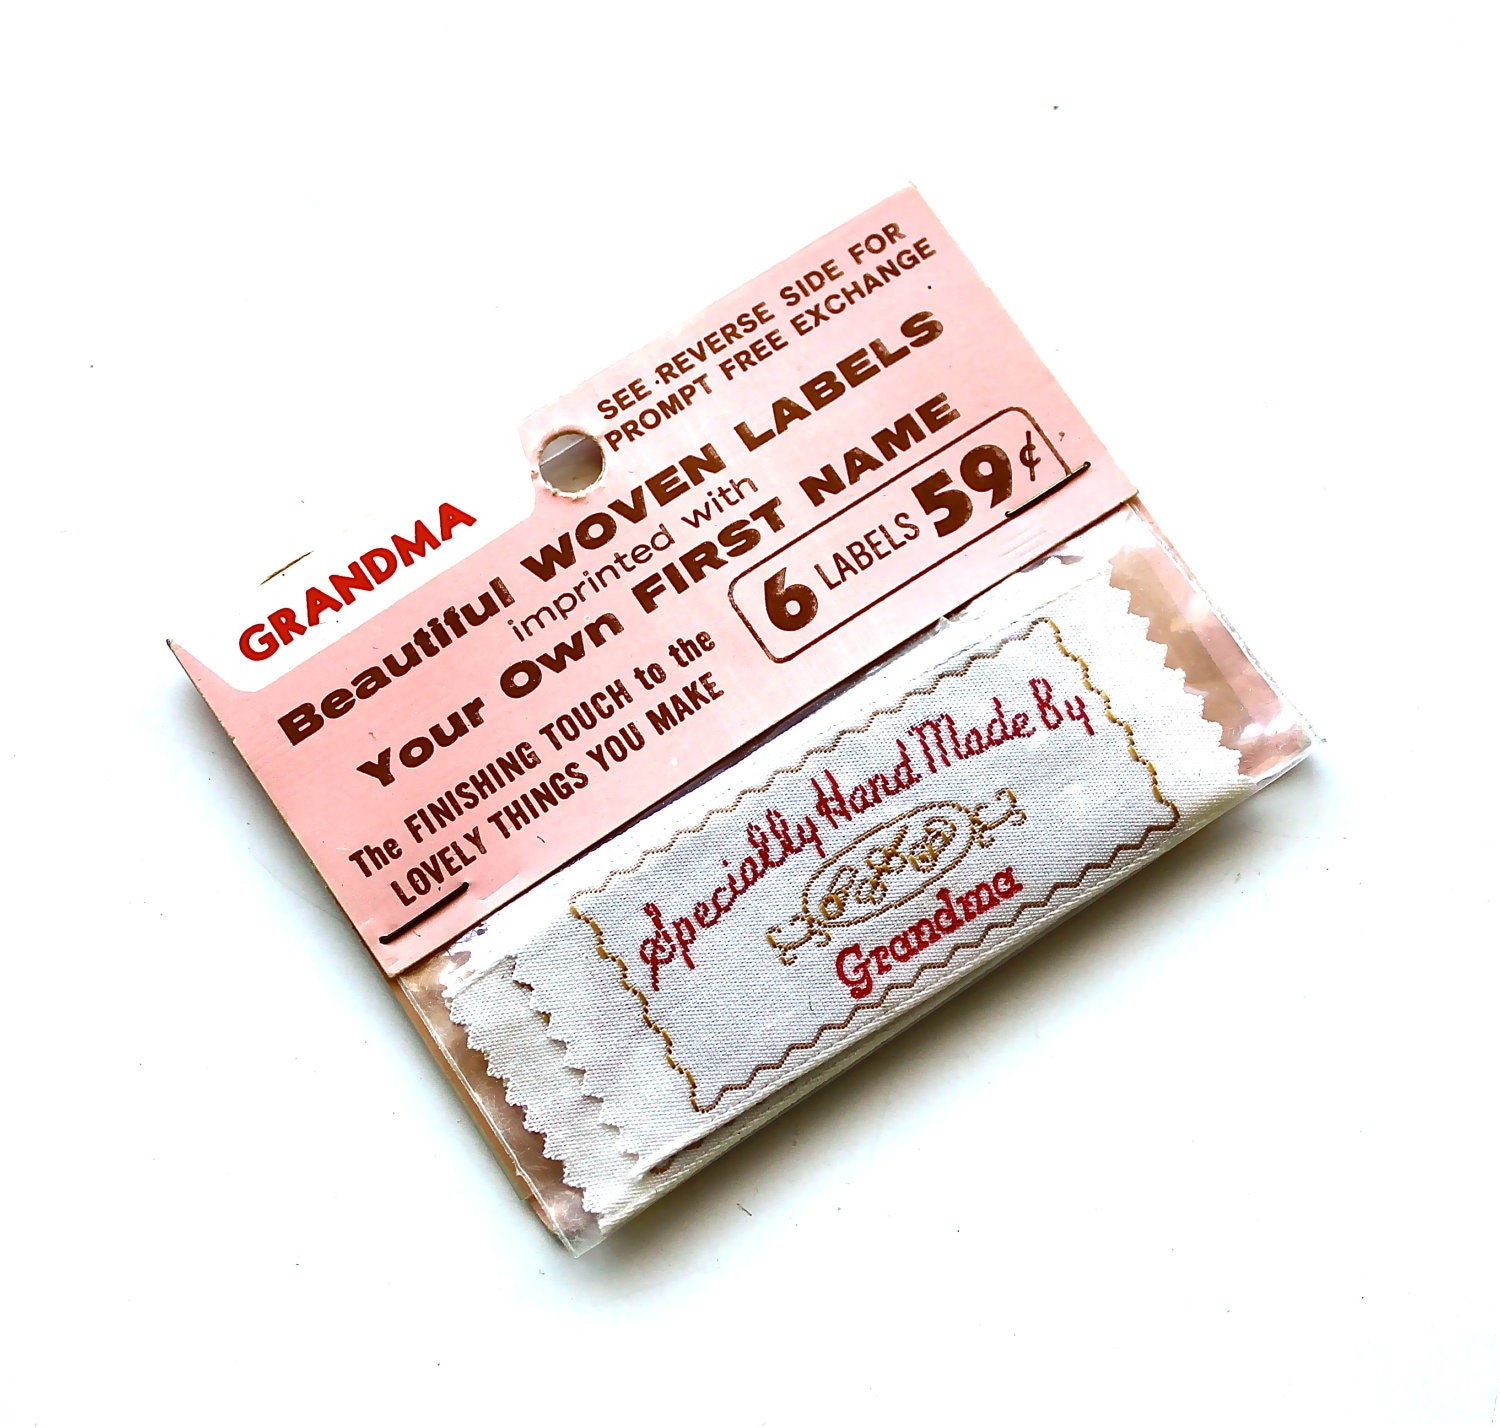 Sewn By Grandma Vintage Sewing Labels By Becaruns On Etsy